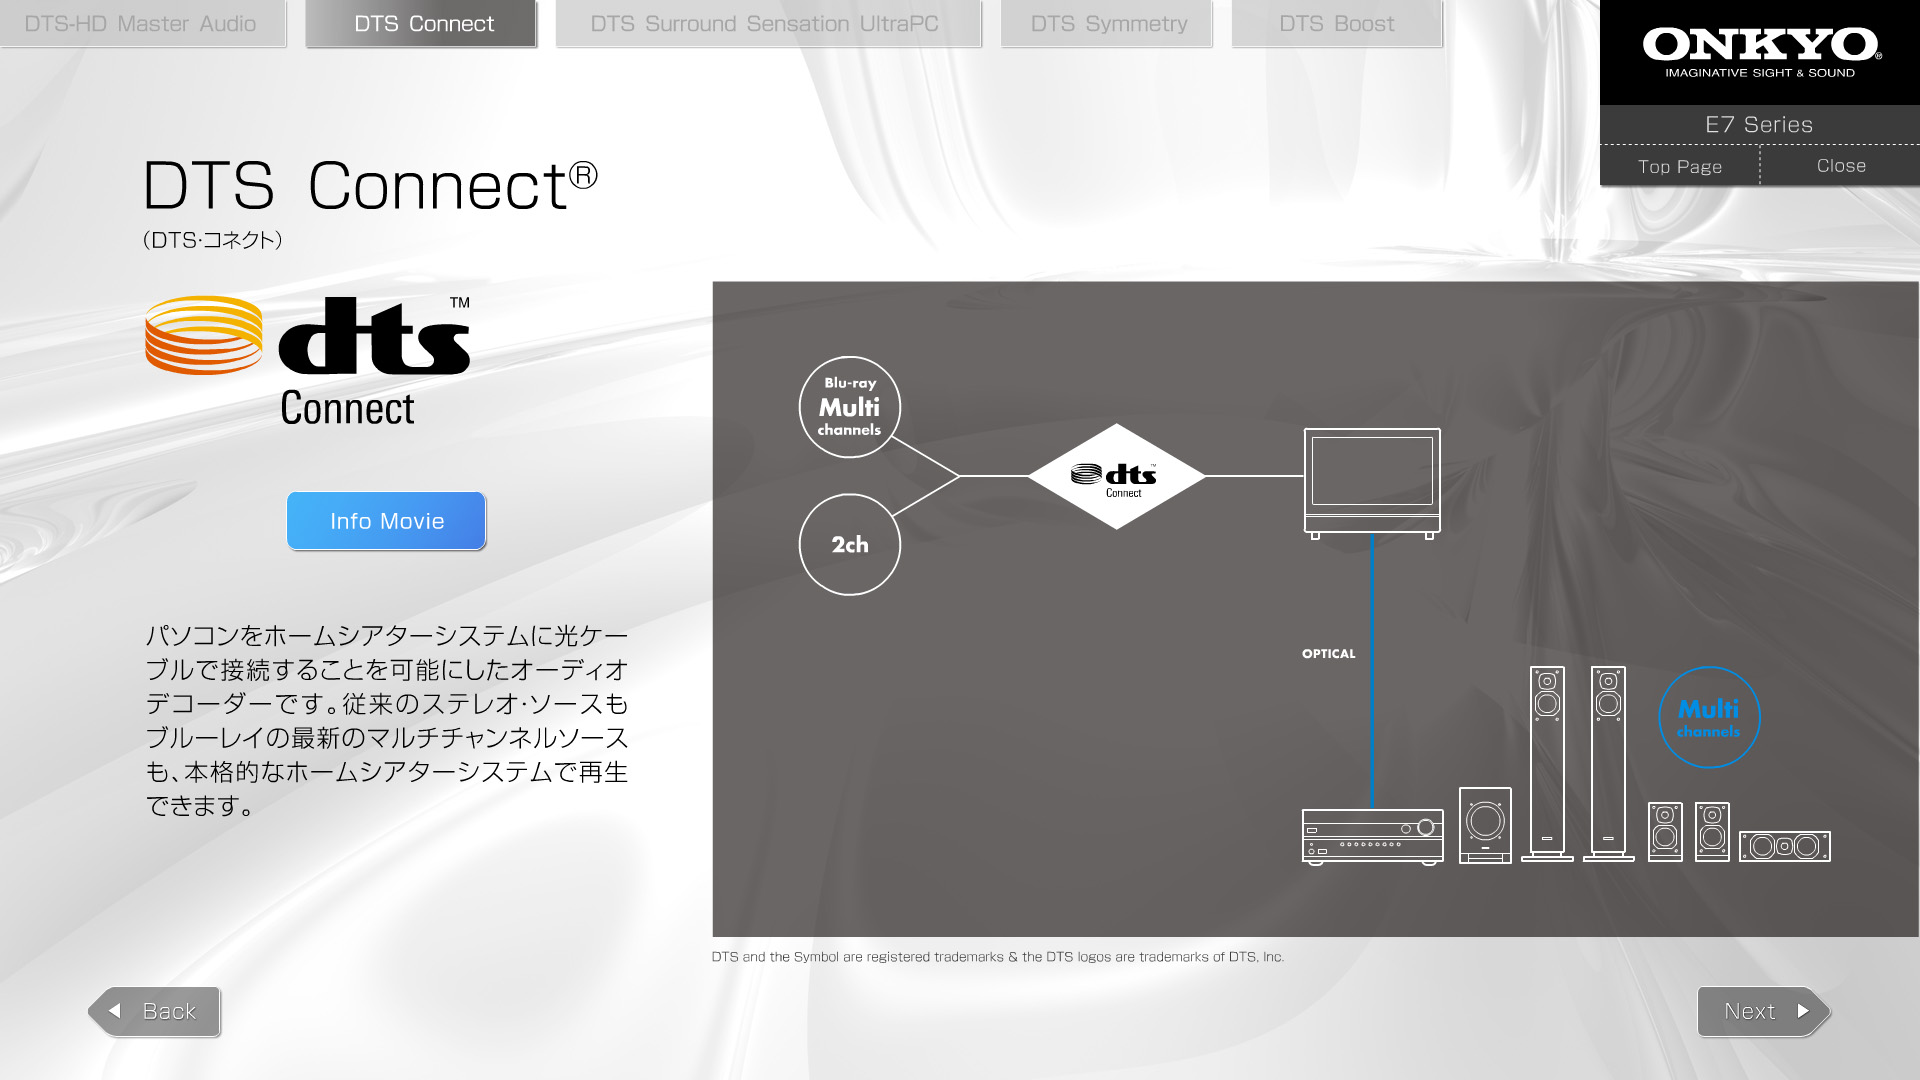 DTS Connectの説明画面